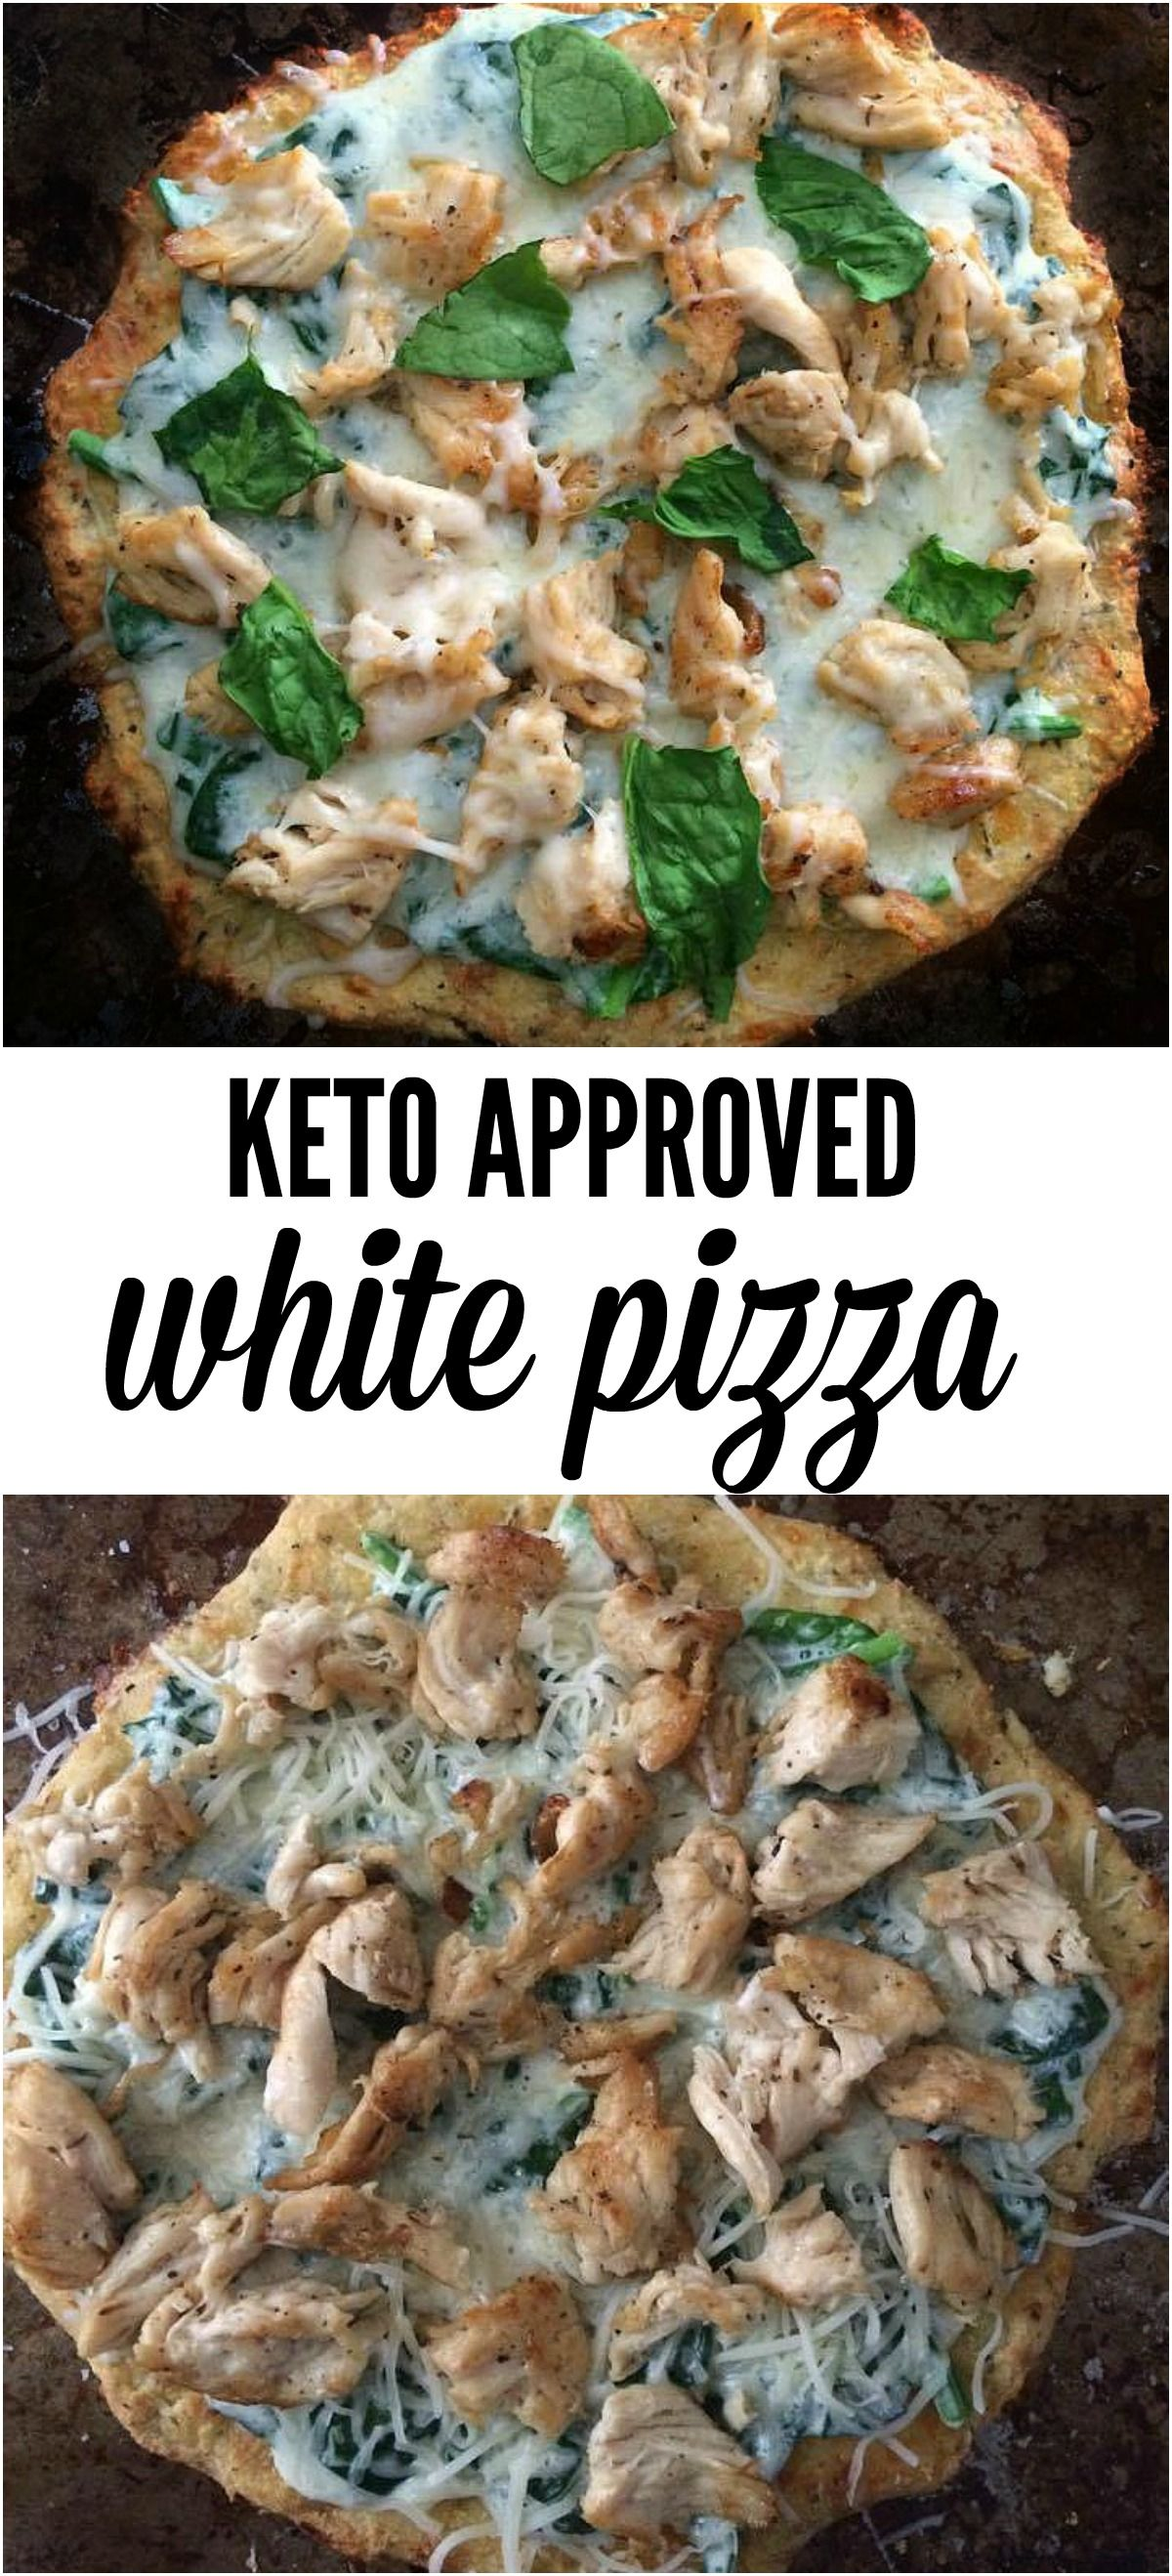 Keto Pizza- Grilled Chicken & Spinach Only 2.5 NET Carbs Per Serving! | Keto